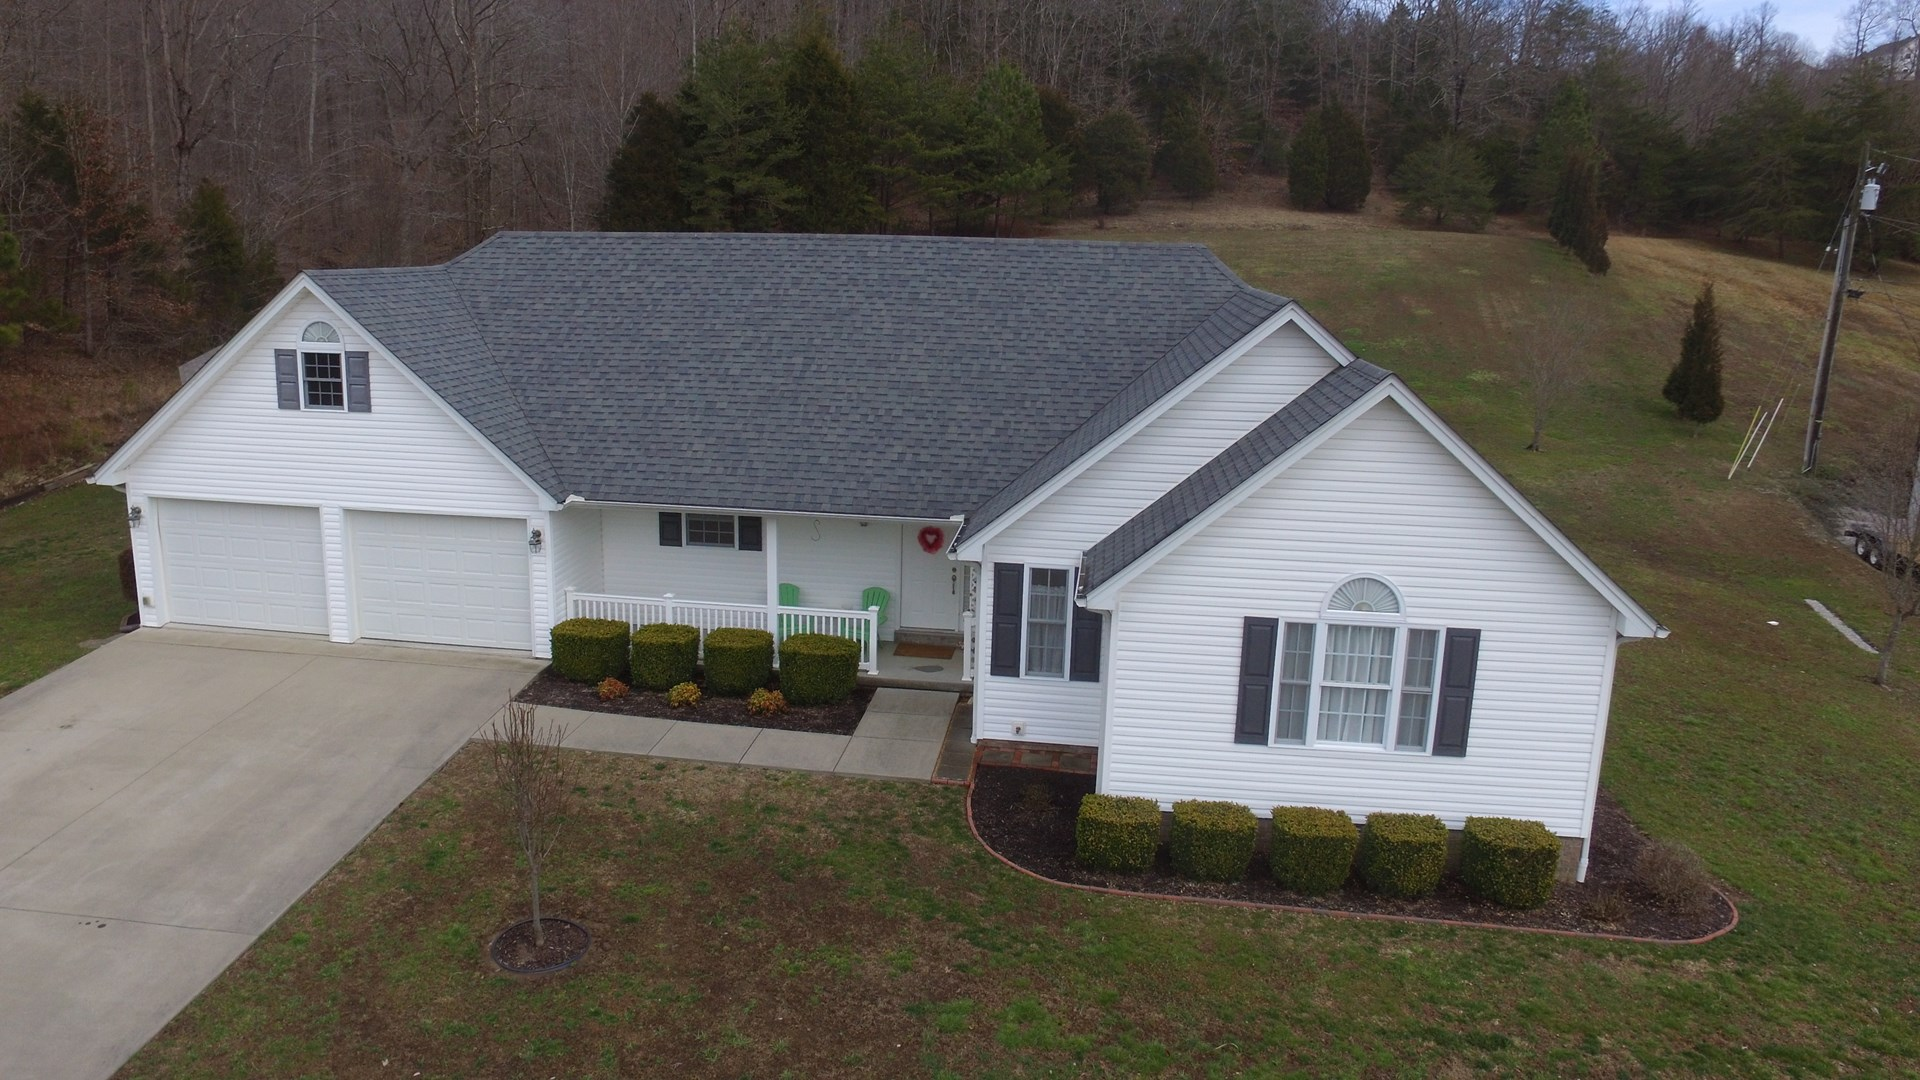 IMMACULATE HOME WITH ATTACHED GARAGE IN SOUTH-CENTRAL KY.